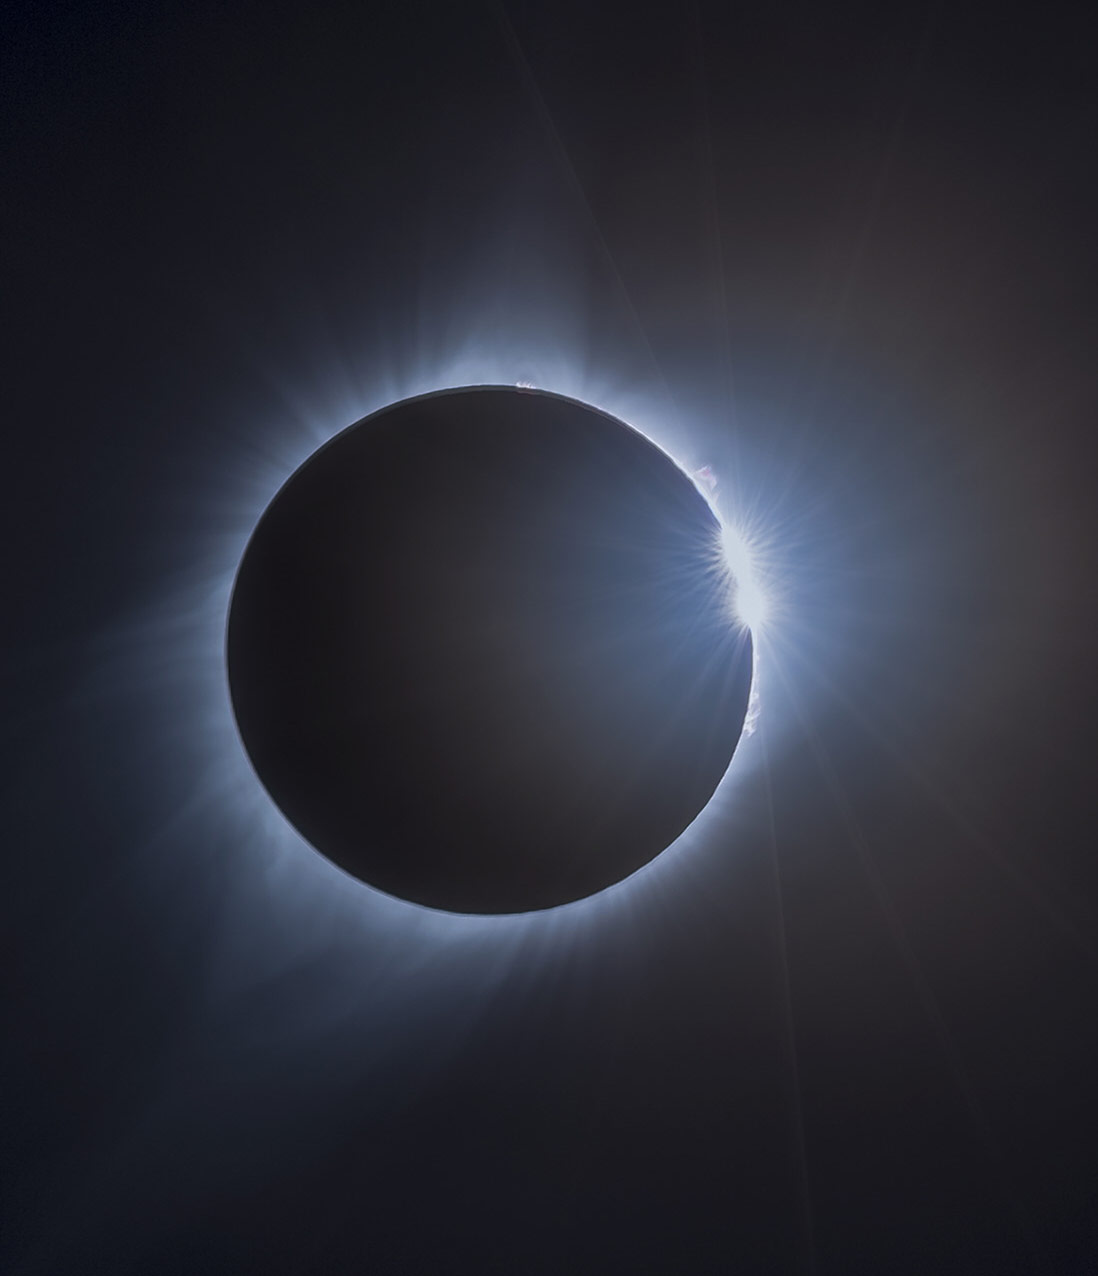 "Total Solar Eclipse ""Diamond Ring"" - Image Credits: NASA/Rami Daud, Alcyon Technical Services"